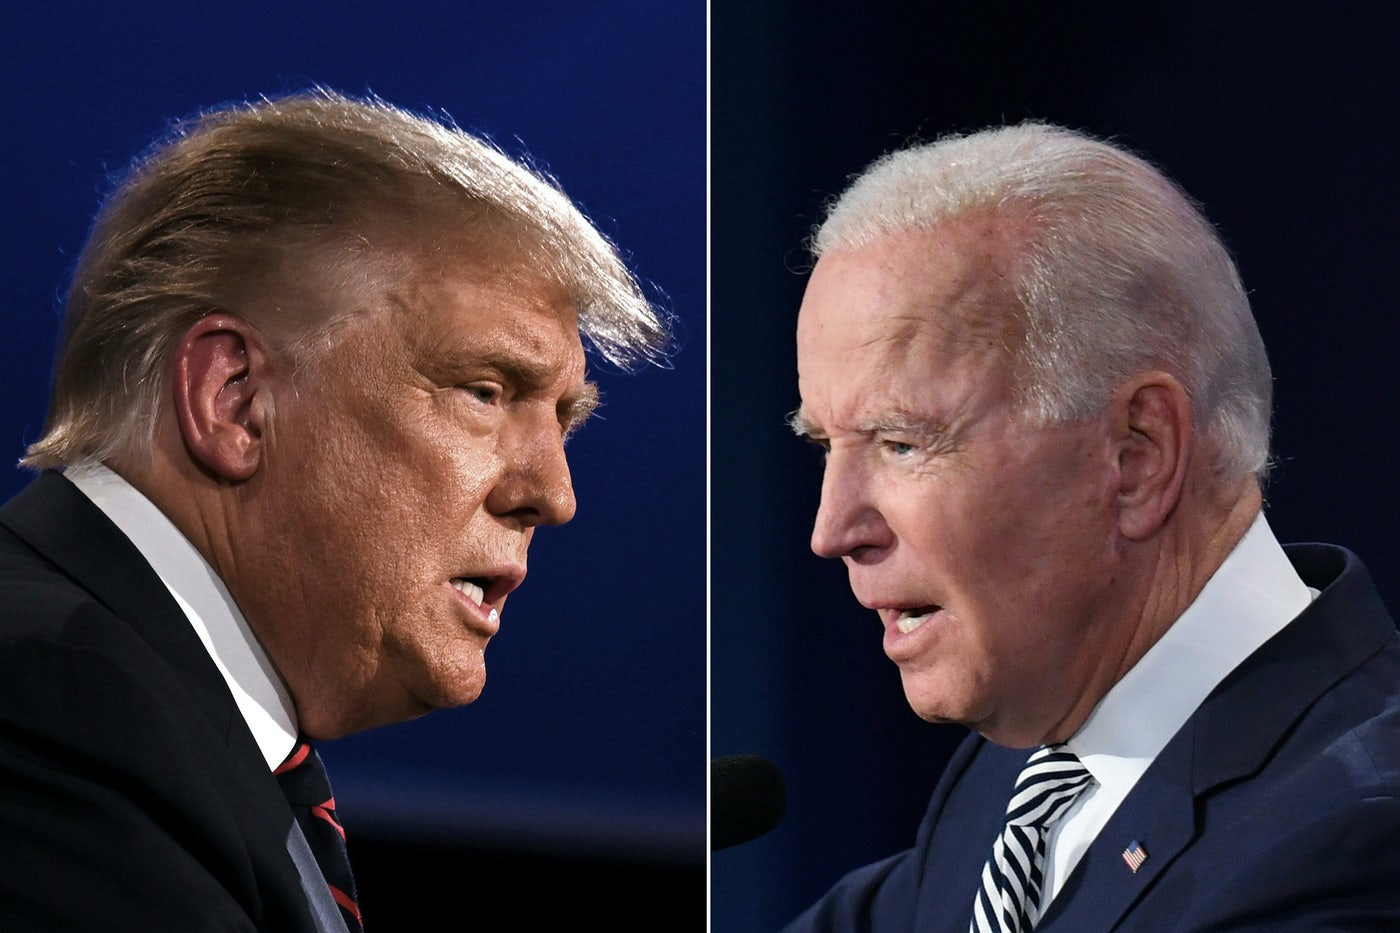 Donald Trump and Joe Biden during the first presidential debate